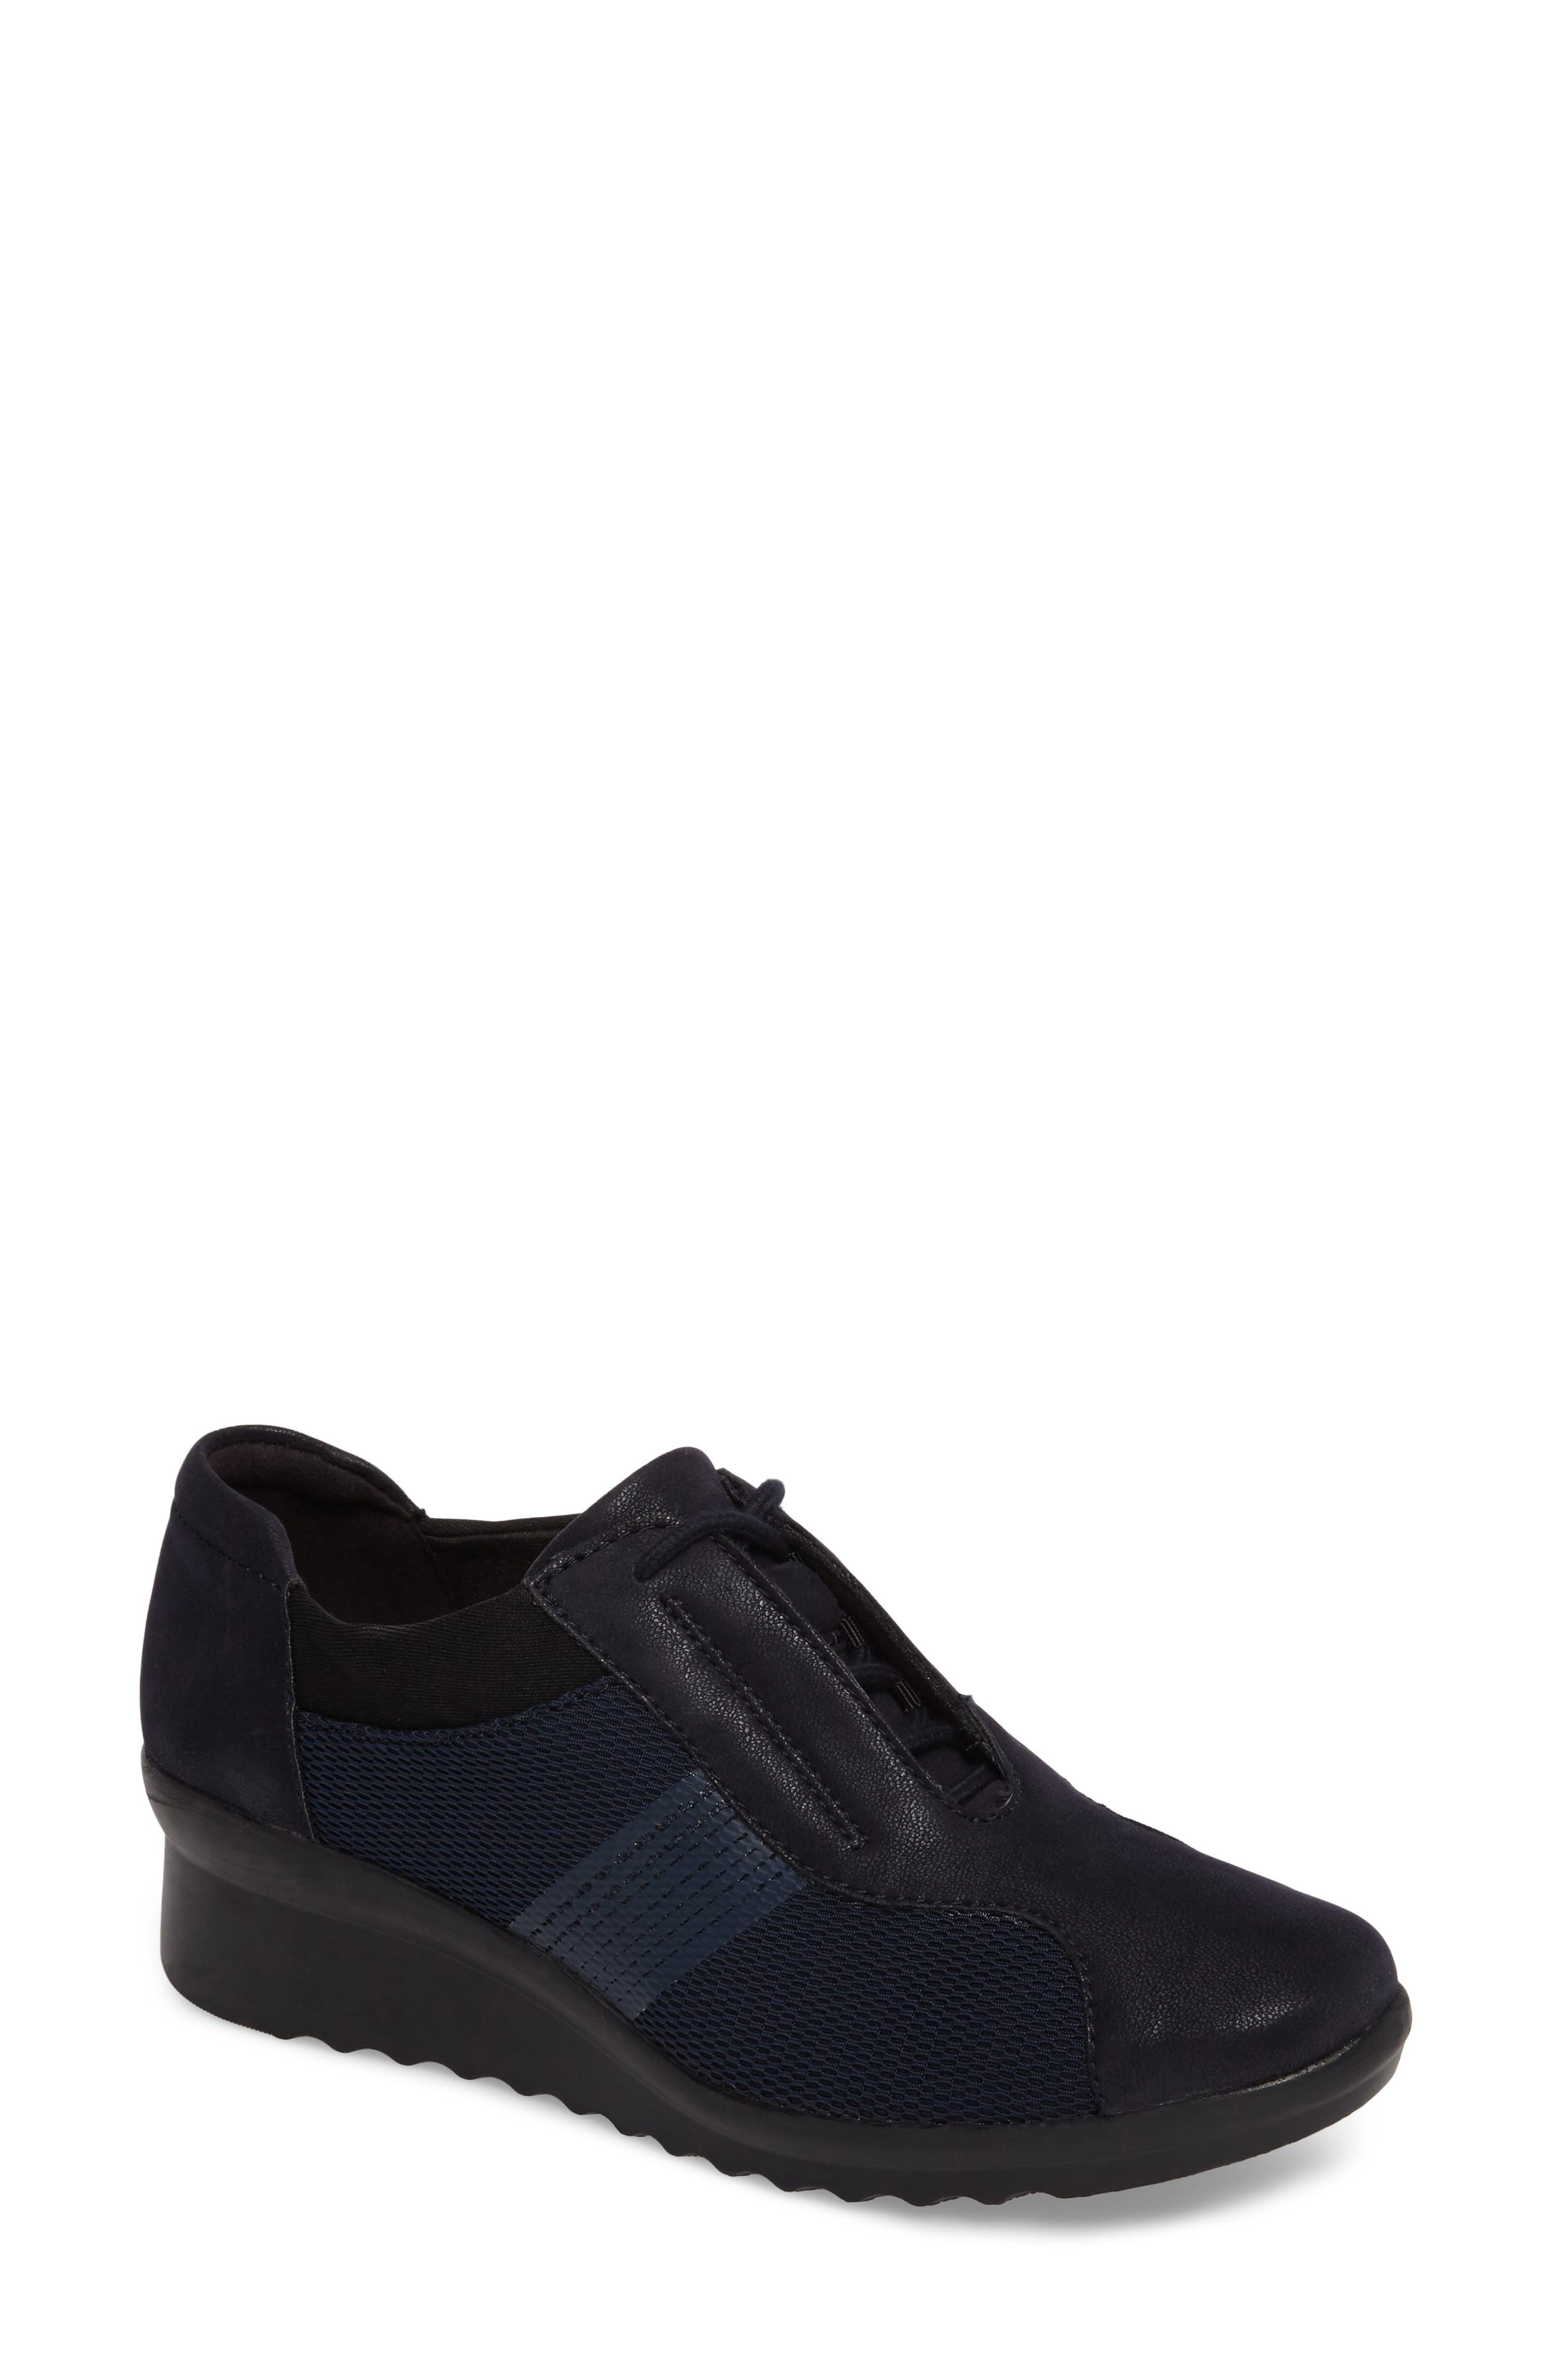 Main Image - Clarks® Caddell Fly Sneaker (Women)